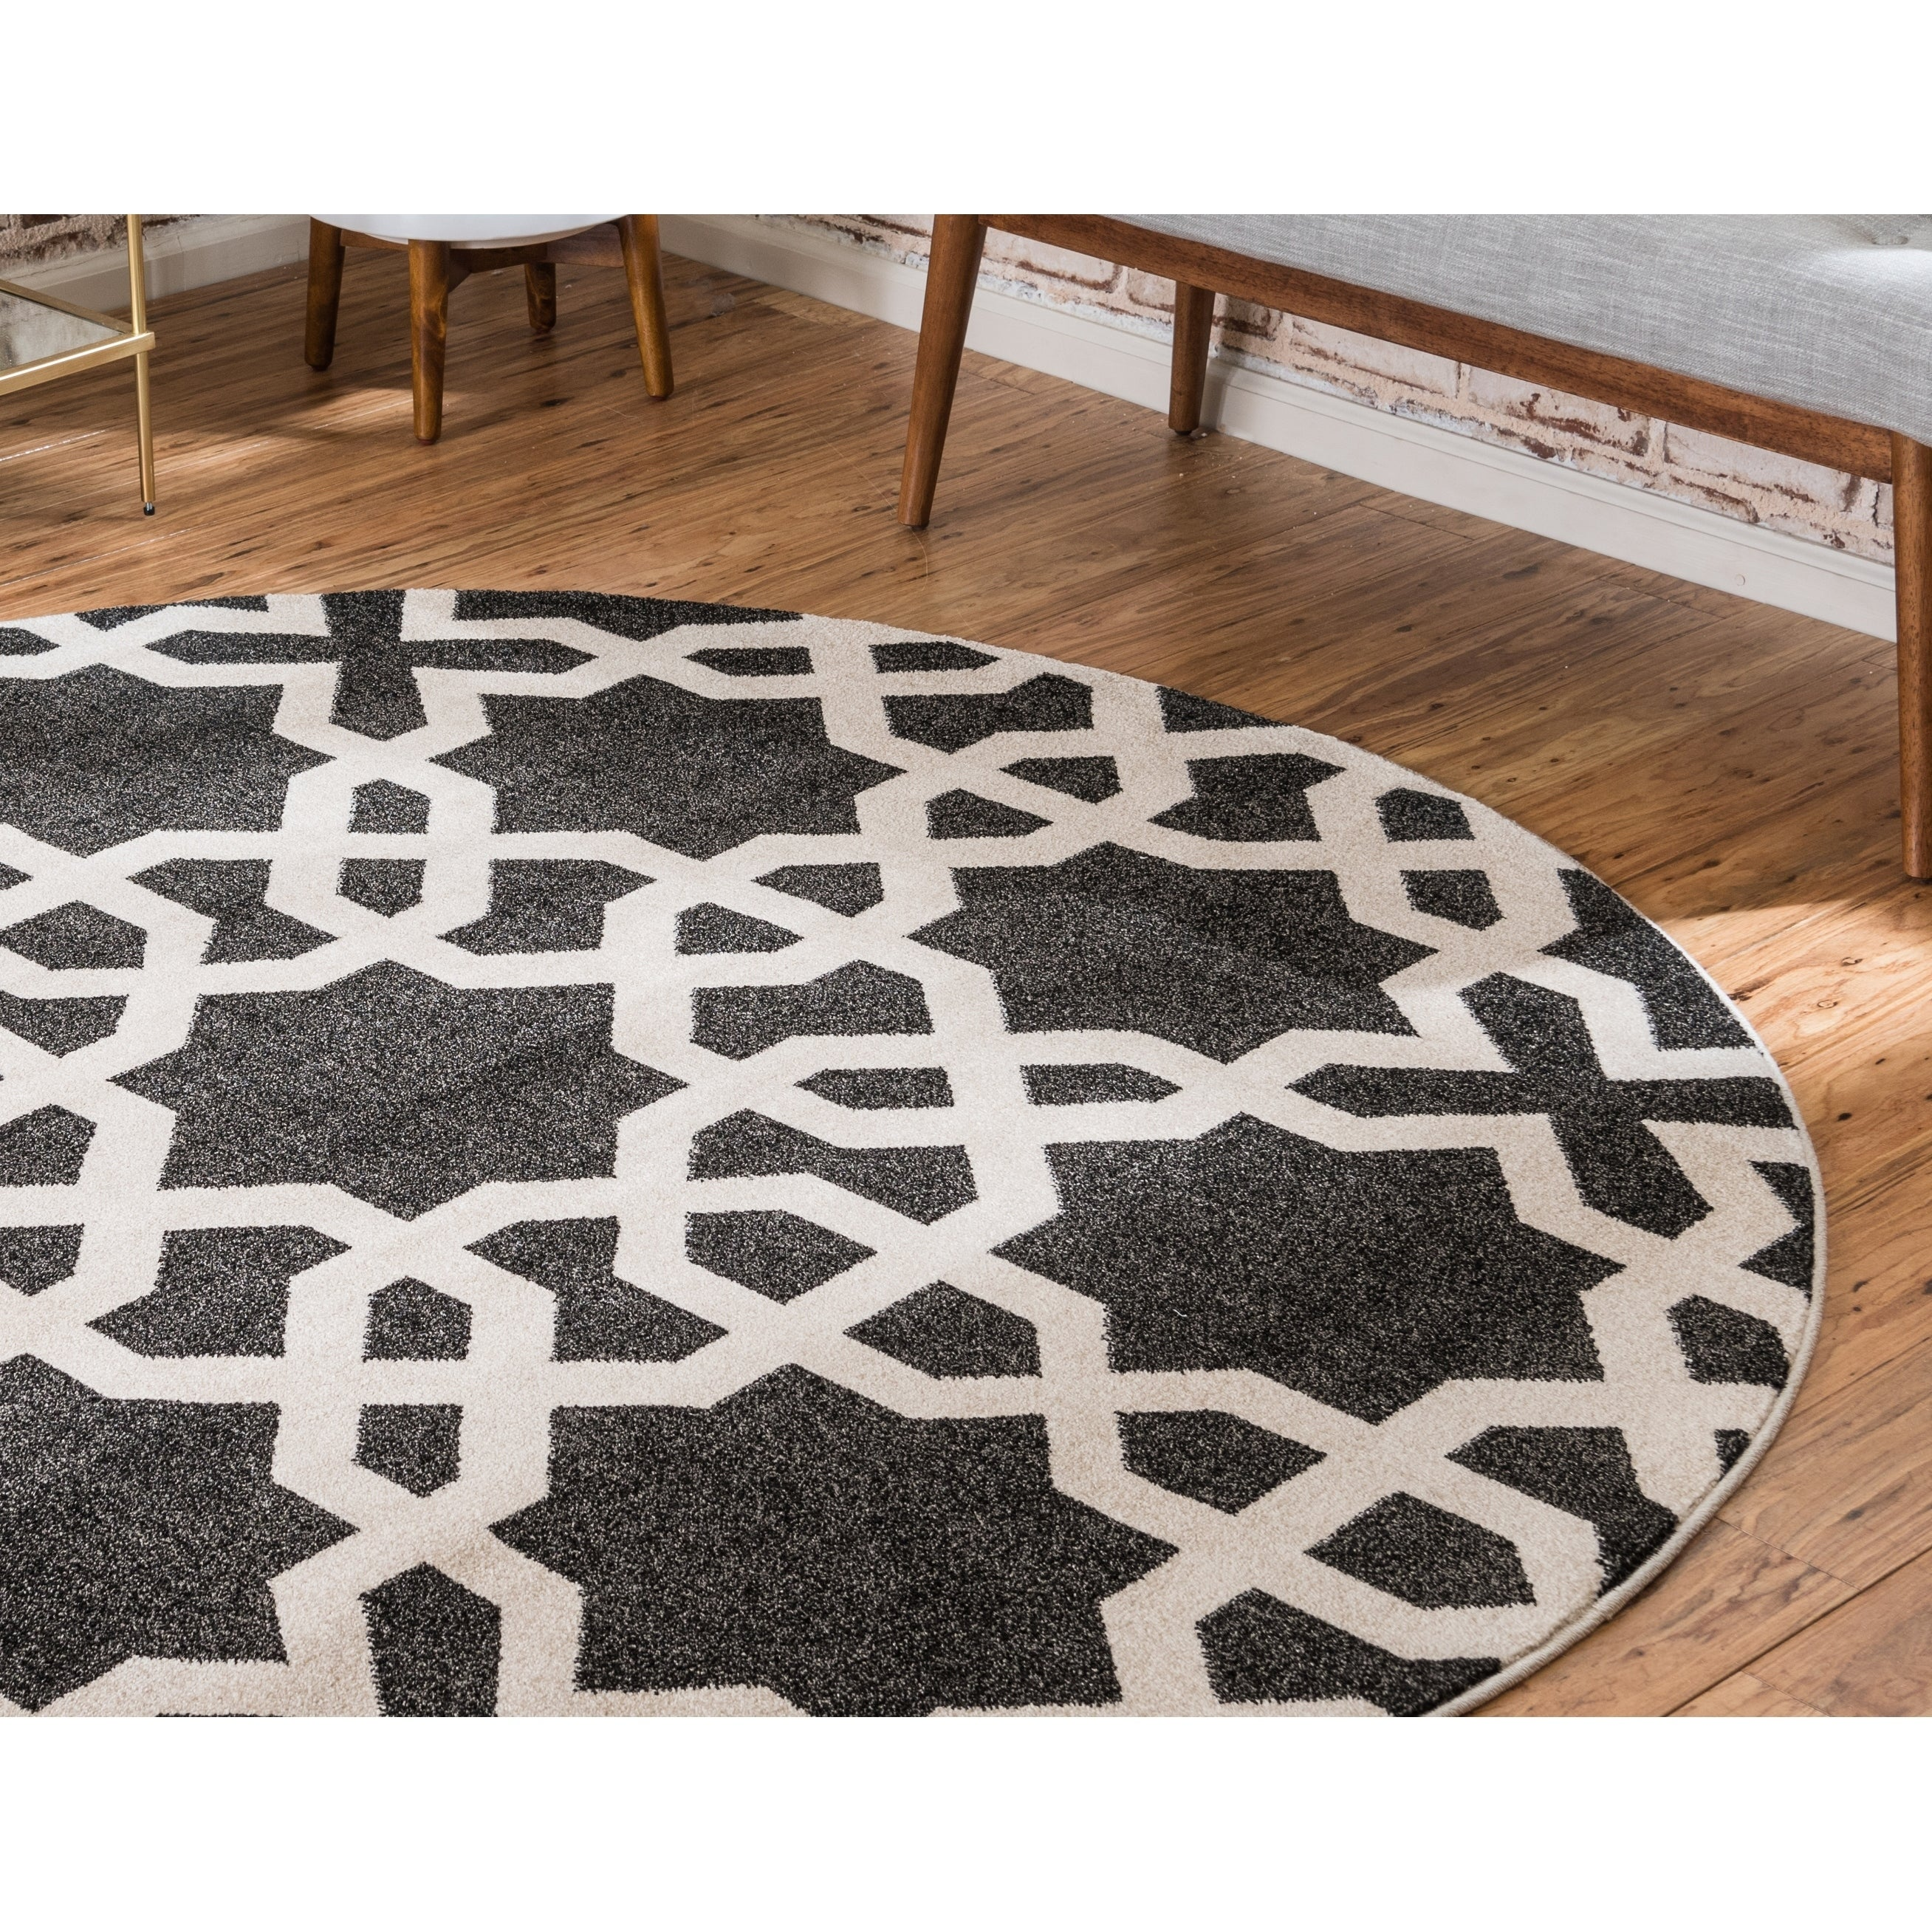 Trellis Black Cream Round Rug 3 X Free Shipping On Orders Over 45 Com 23720383